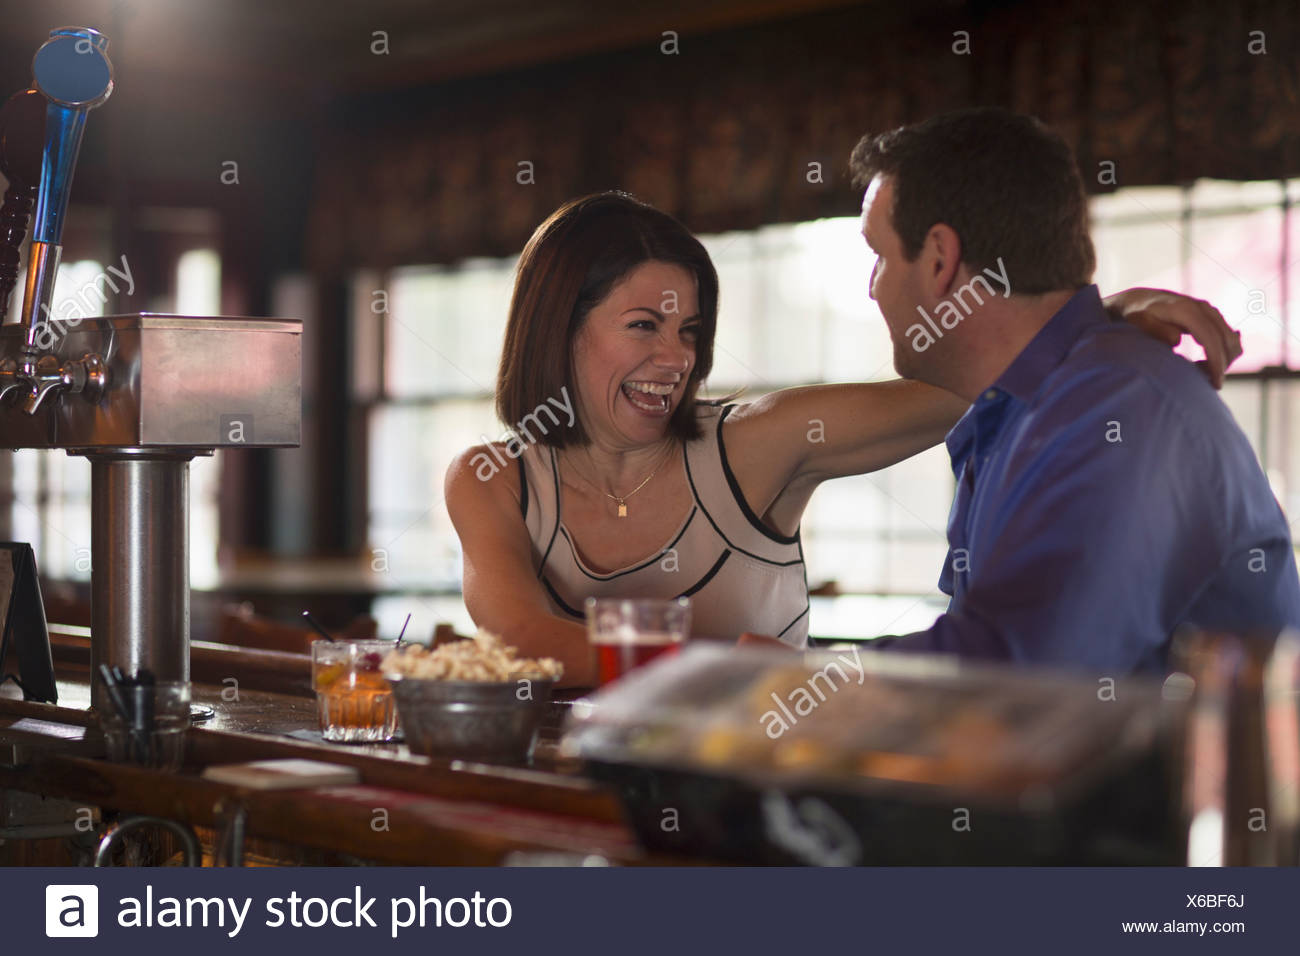 A man and woman seated at a bar flirting and talking On a date New Hope Pennsylvania USA - Stock Image